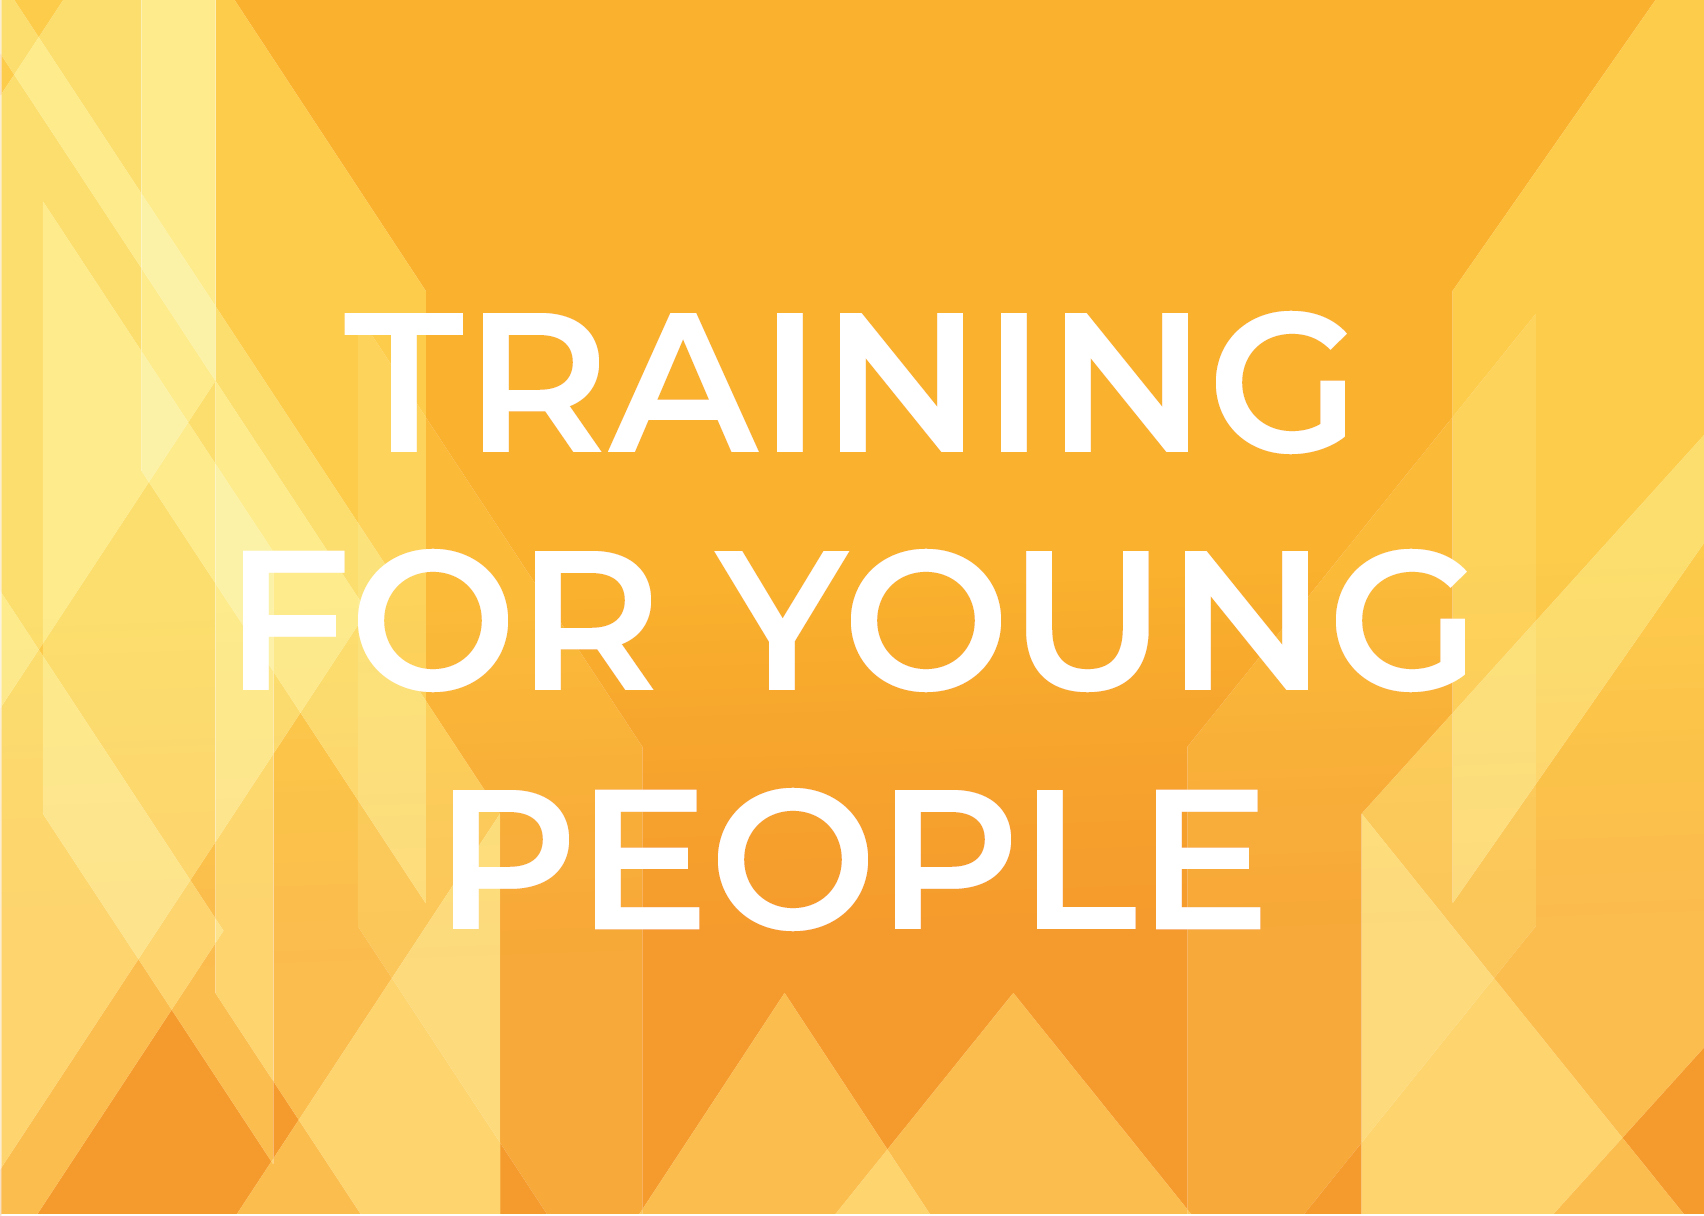 Training for Young People